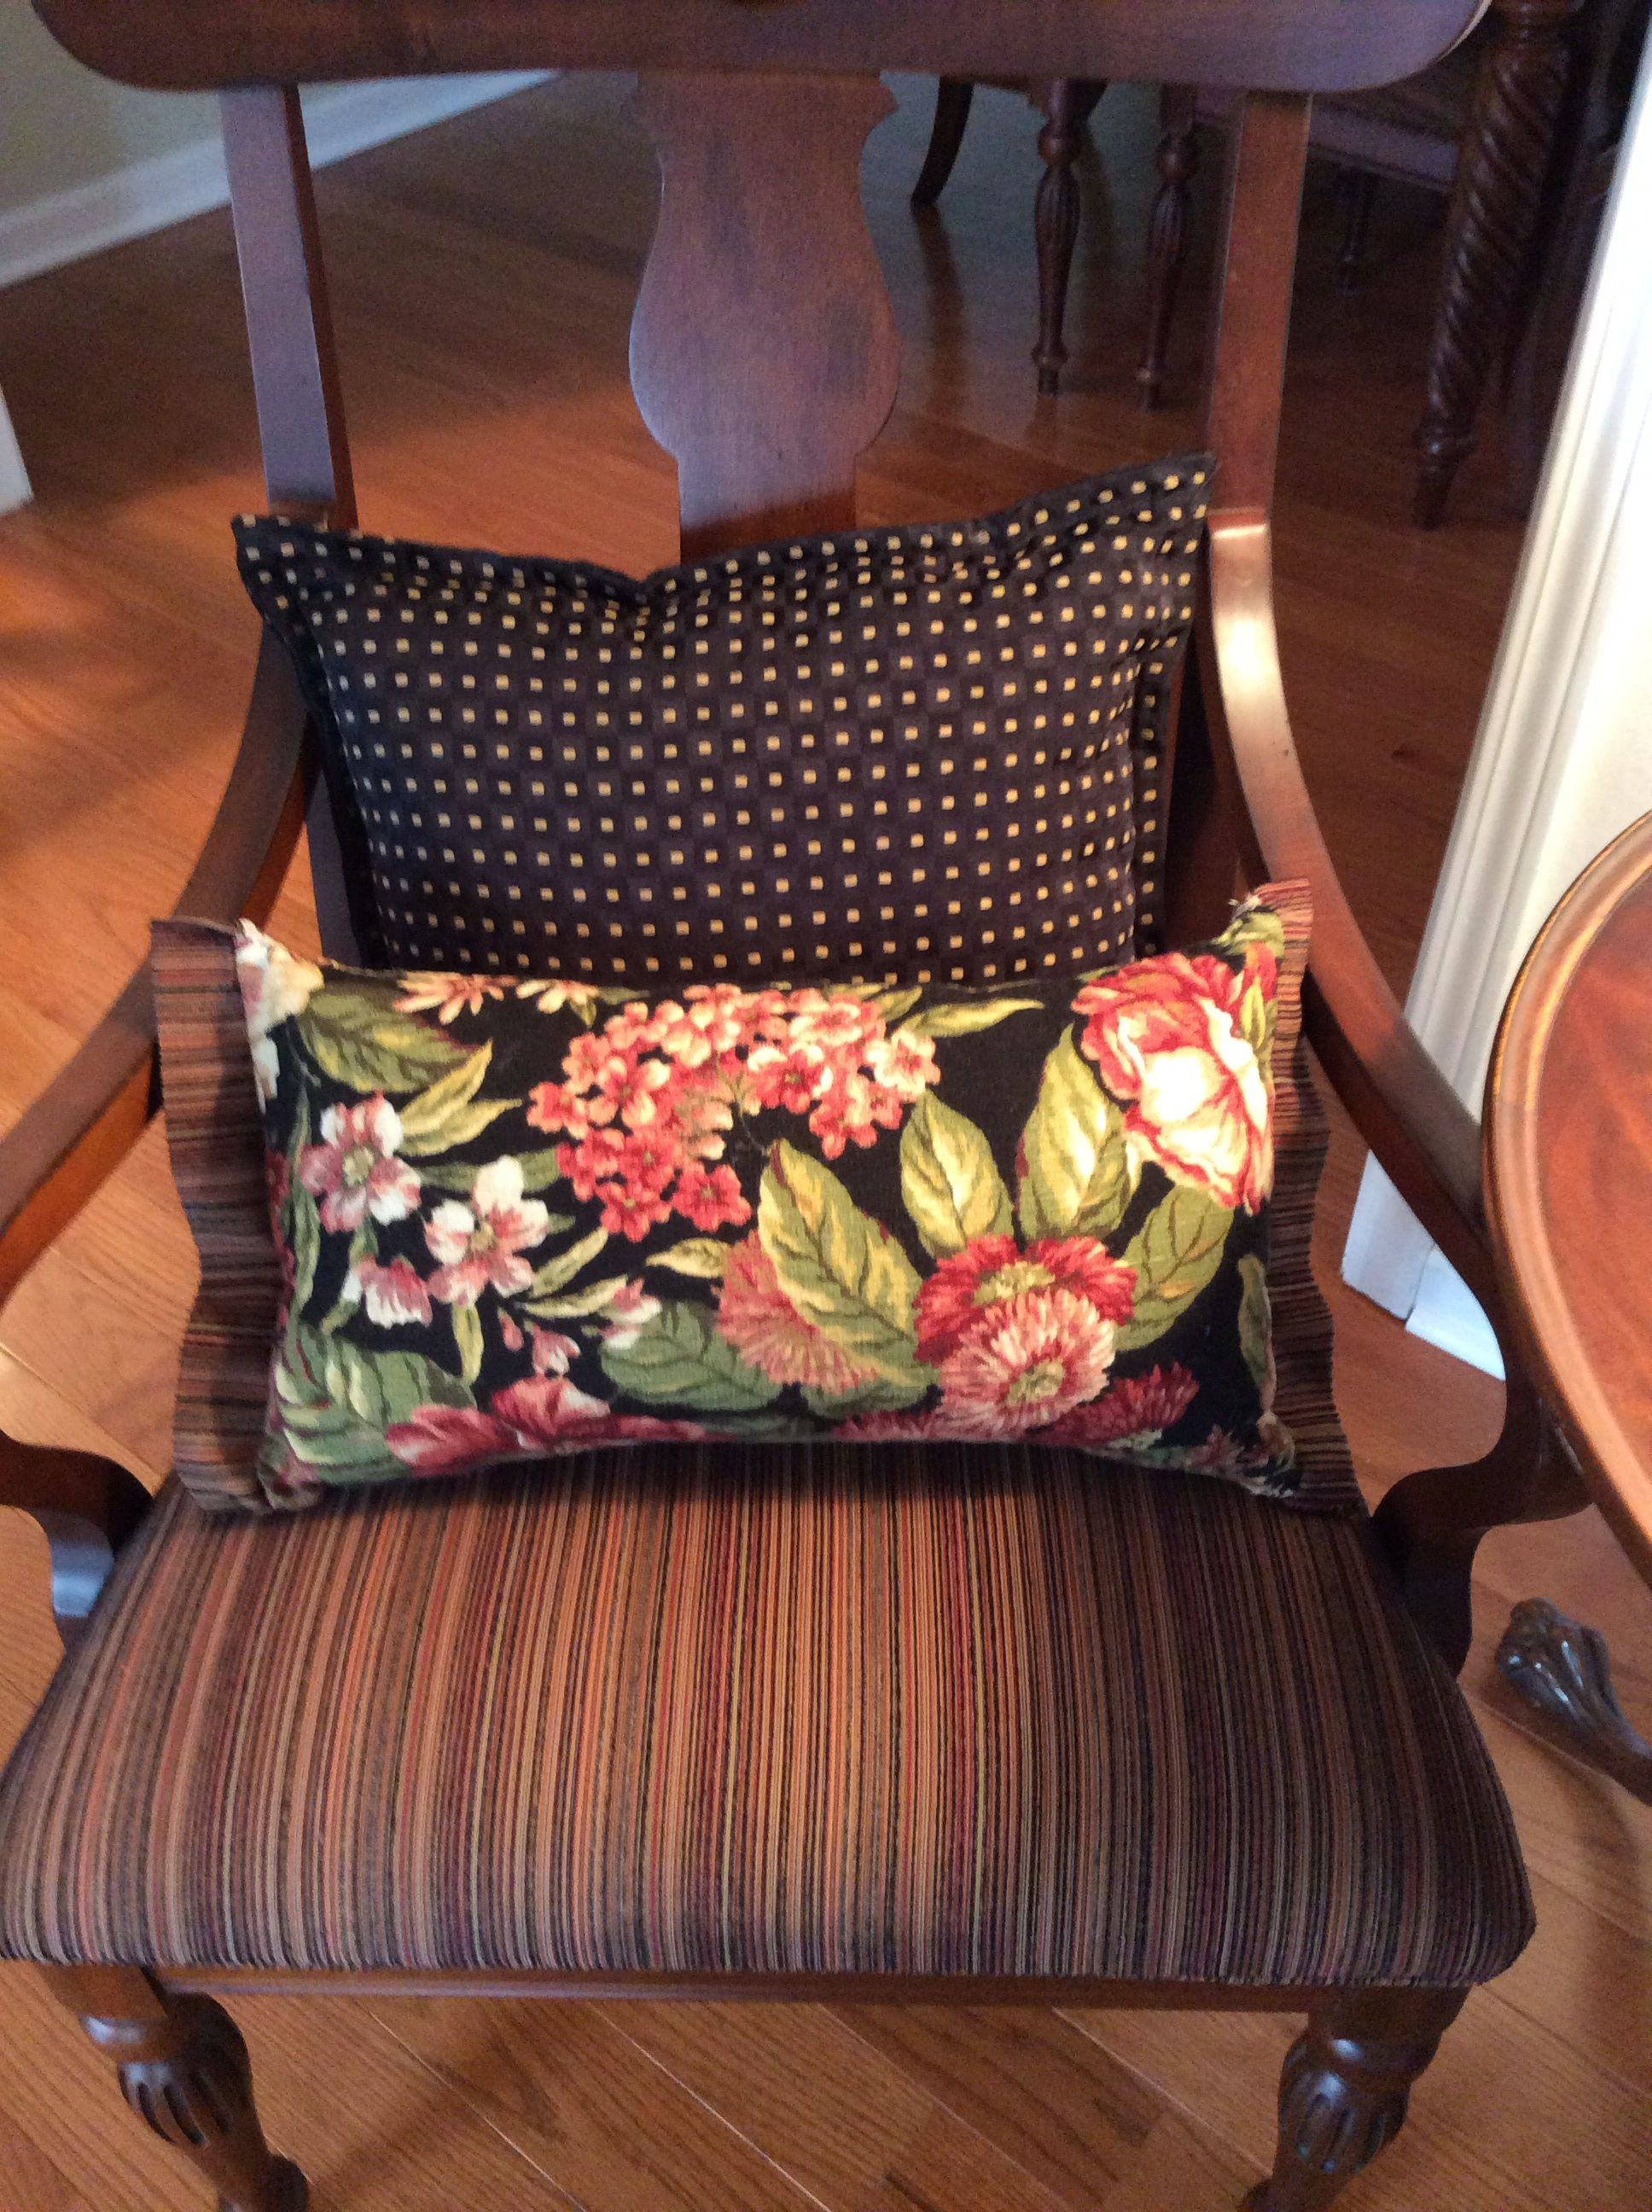 Wondrous Lumbar Pillows In Contrasting Fabrics Can Add A Splash Of Ocoug Best Dining Table And Chair Ideas Images Ocougorg